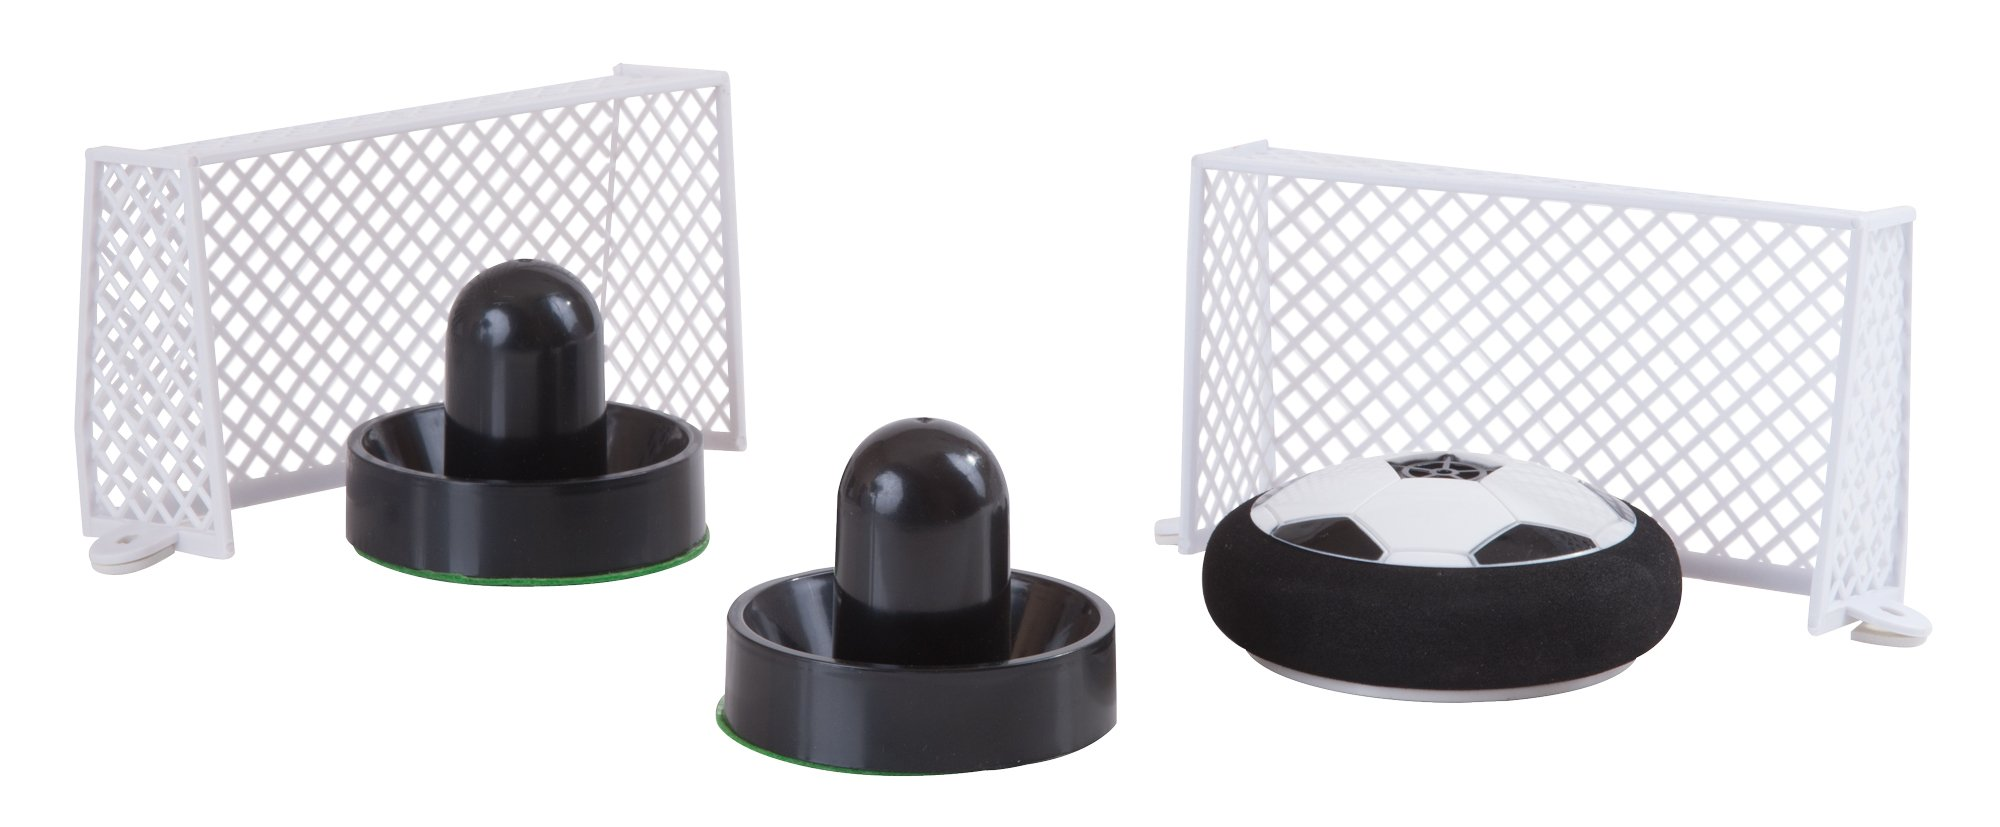 The Paragon Air Hockey - Soccer Tabletop Multiplayer Game with Nets and Soccer Hockey Puck